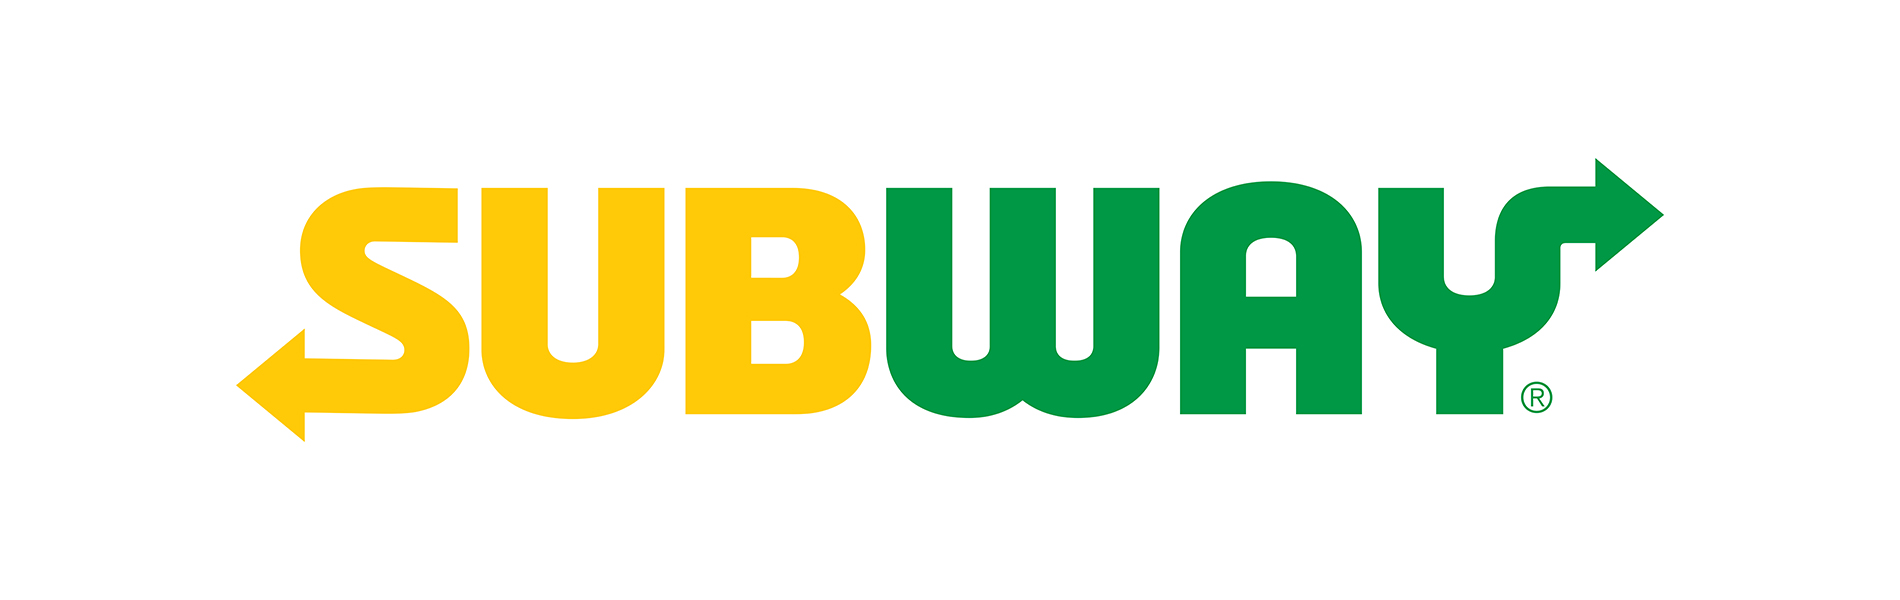 subway®-restaurants-reveals-bold-new-logo-and-symbol-null-HR